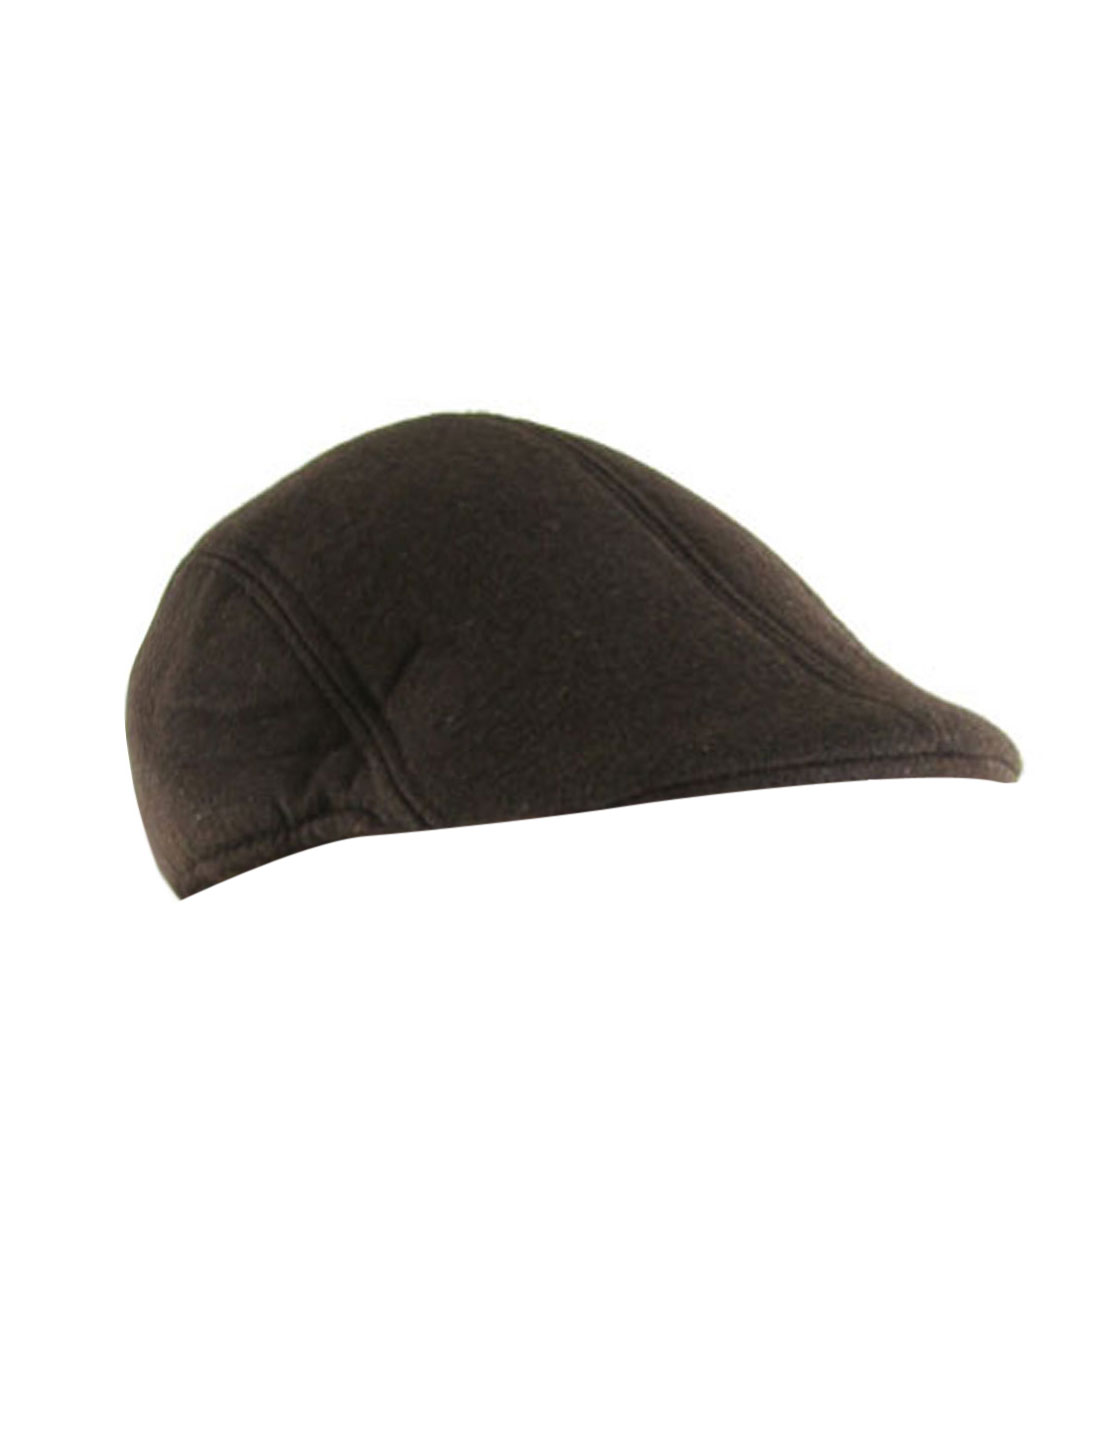 Woman Men Padded Flat Cabbie Hat Ivy Duck Cap Coffee Color